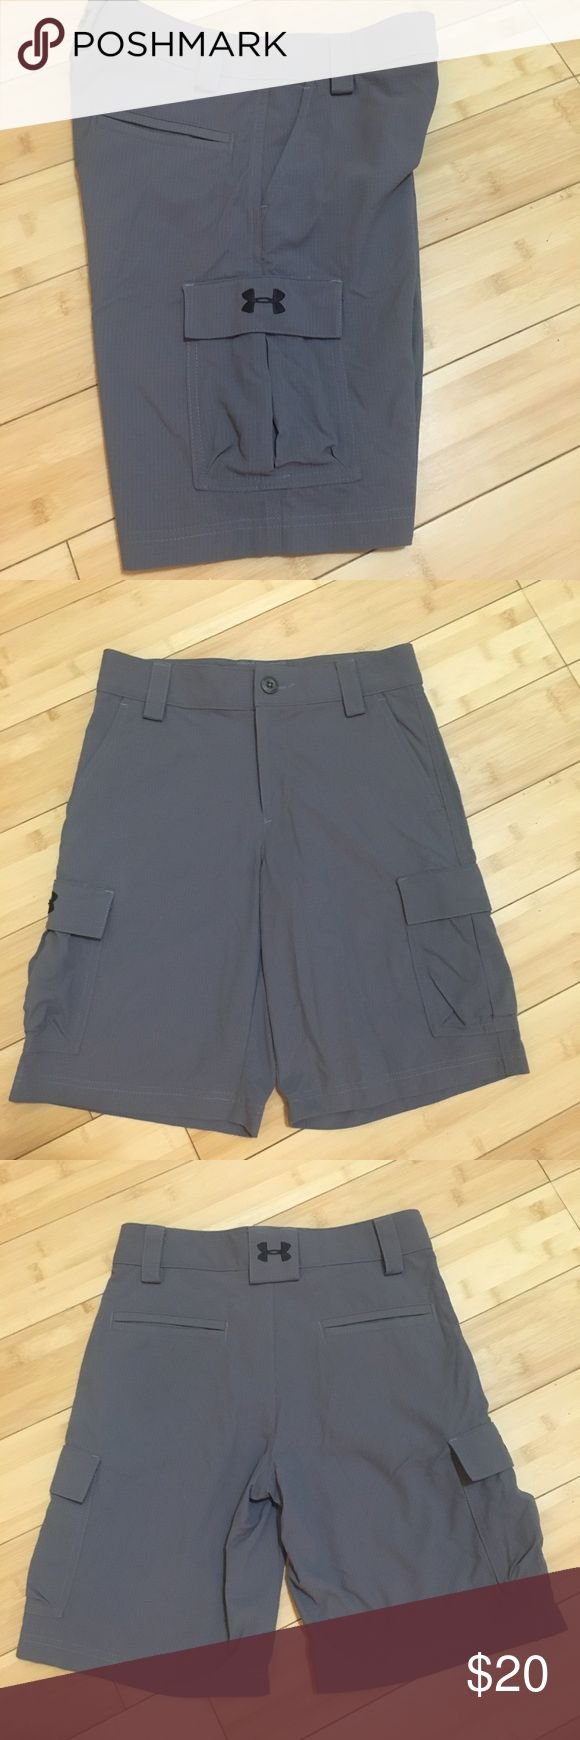 •Under Armour• Boys Cargo Shorts Under Armour Boys Size Medium (10/12) Cargo Shorts. Gray. Style # 1229256. Excellent Condition. 2 Front Slant Pockets, 2 Open Back Pockets, 2 Side Snap Cargo Pockets. 100% Ultra-durable 30+ SPF ripstop woven nylon. Internal adjustable waistband. Button and zipper closure. {{{ Bundle to save $$$$ }}} Smoke free home. Under Armour Bottoms Shorts